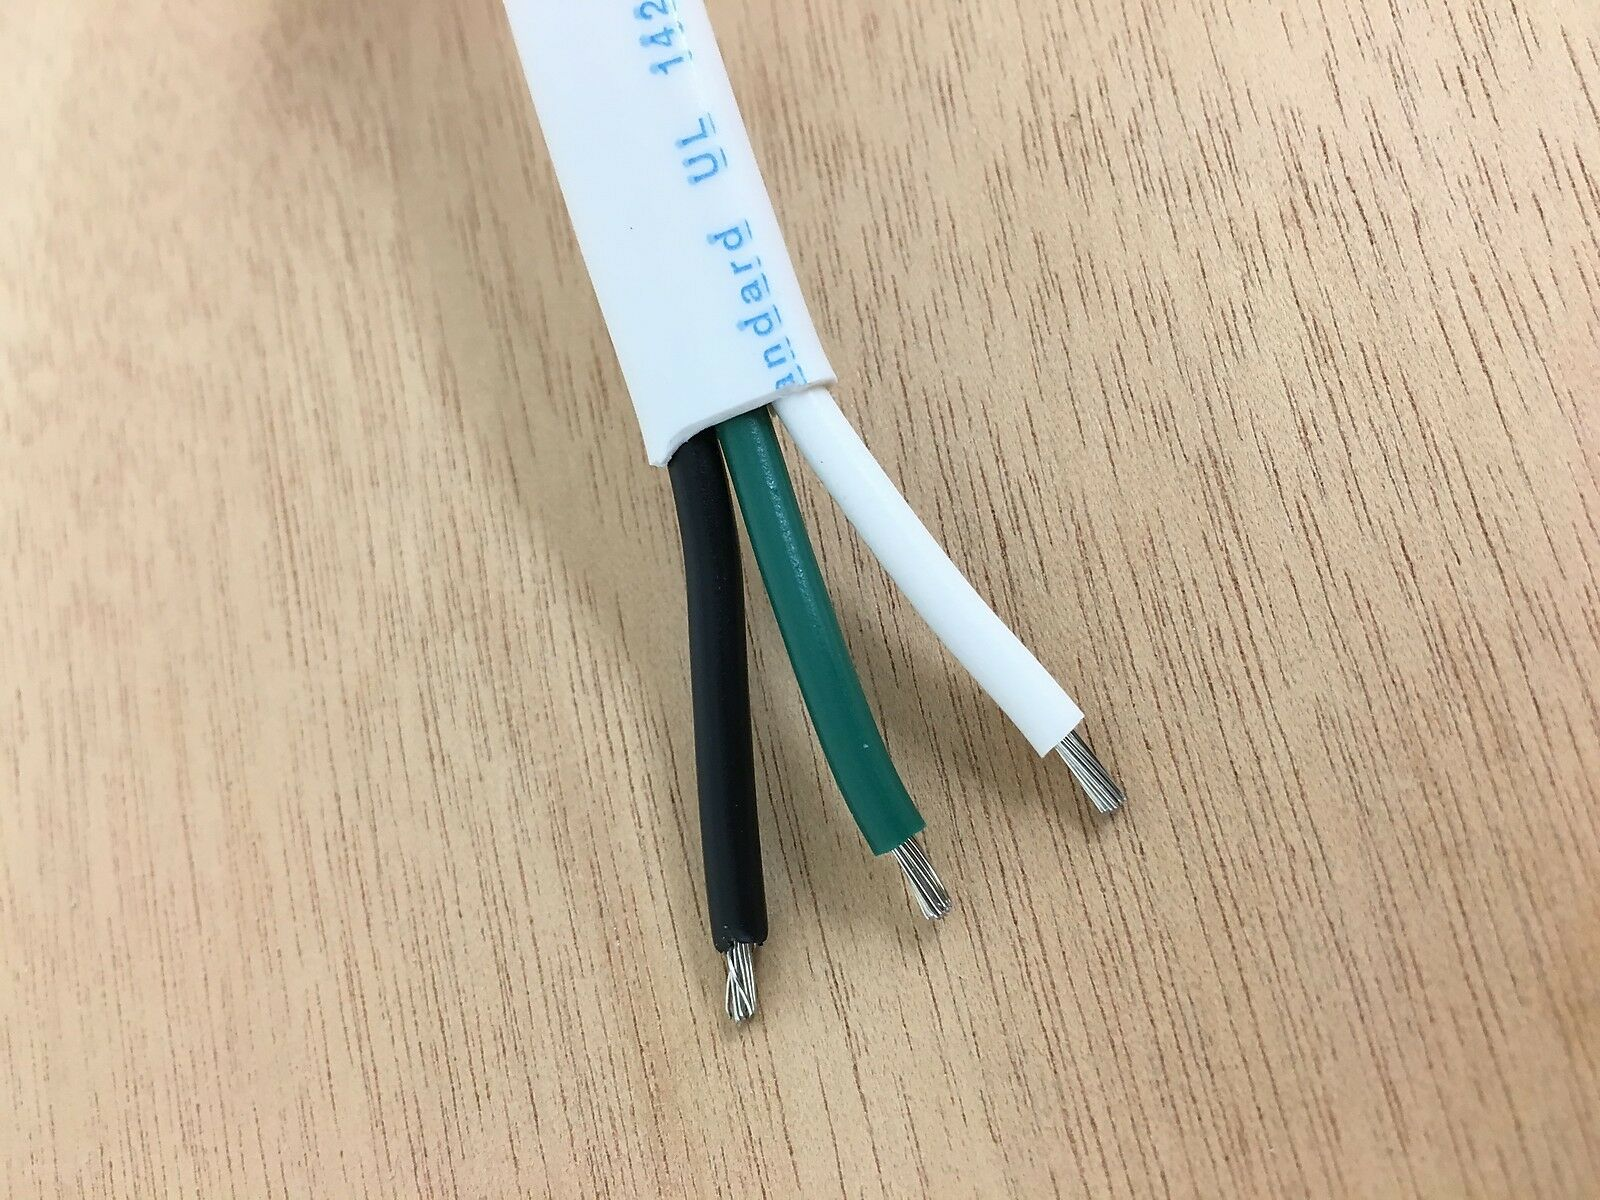 16 3 awg gauge marine grade wire ac boat cable tinned copper flat triplex. Black Bedroom Furniture Sets. Home Design Ideas